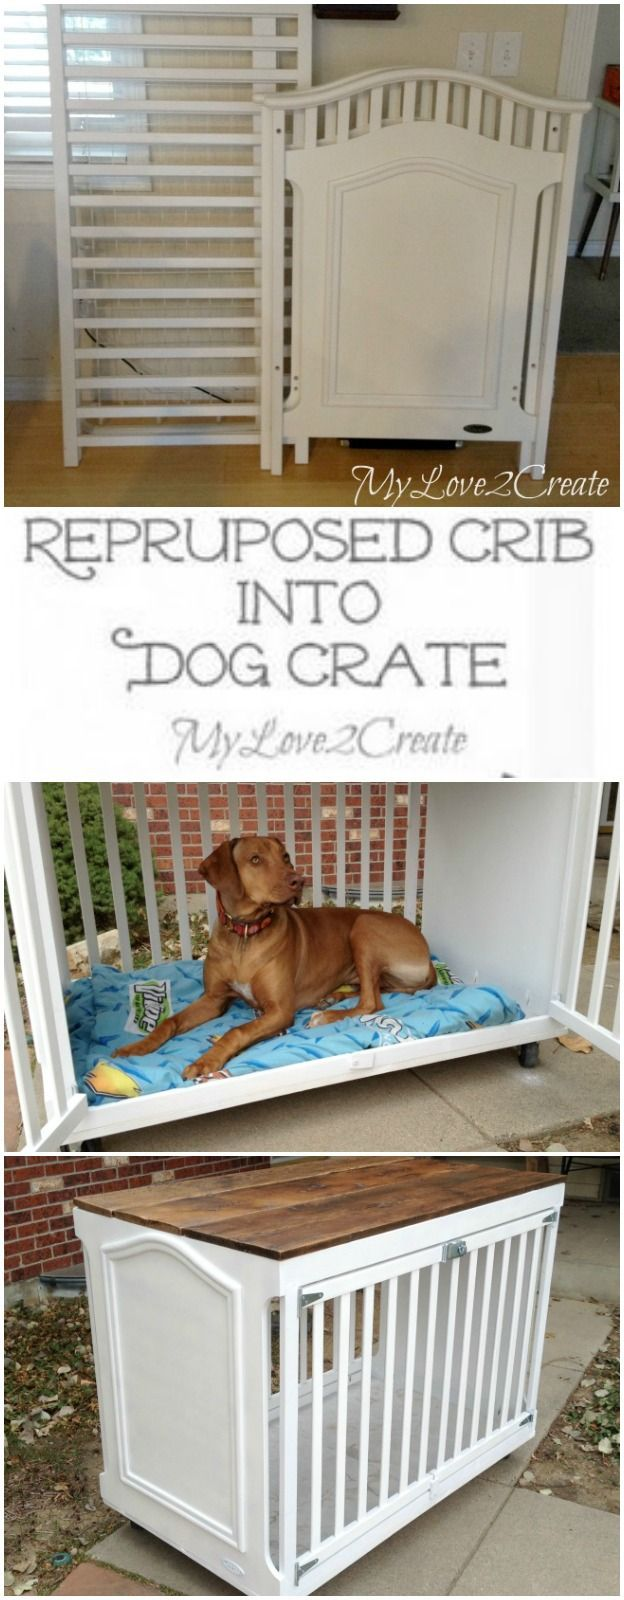 How clever is this repurposed crib turned into a dog crate from My Love 2 Create. #DIYspotlight